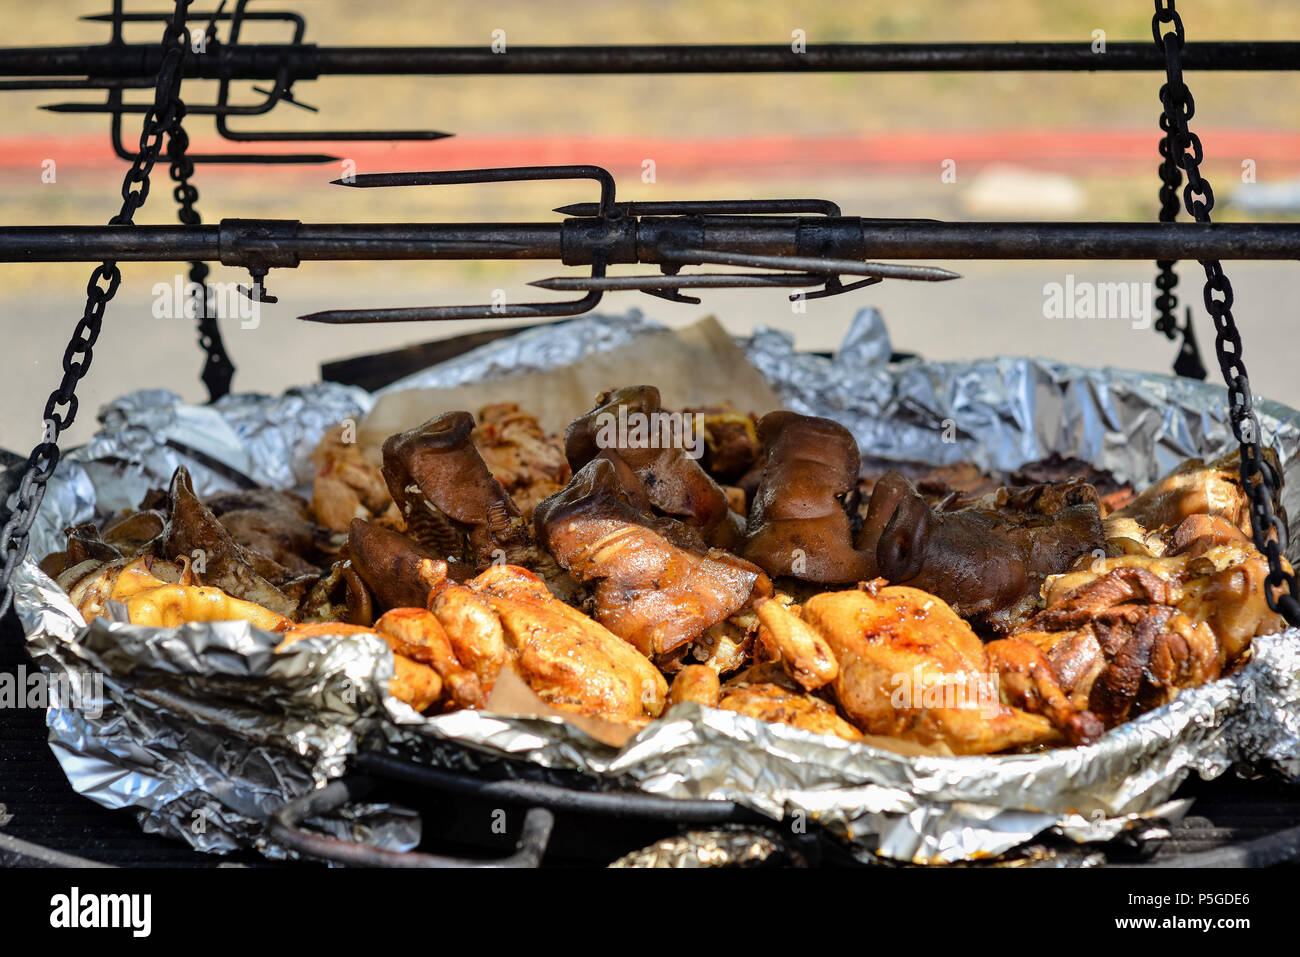 Different fried and grilled meat on a large pan. Stock Photo